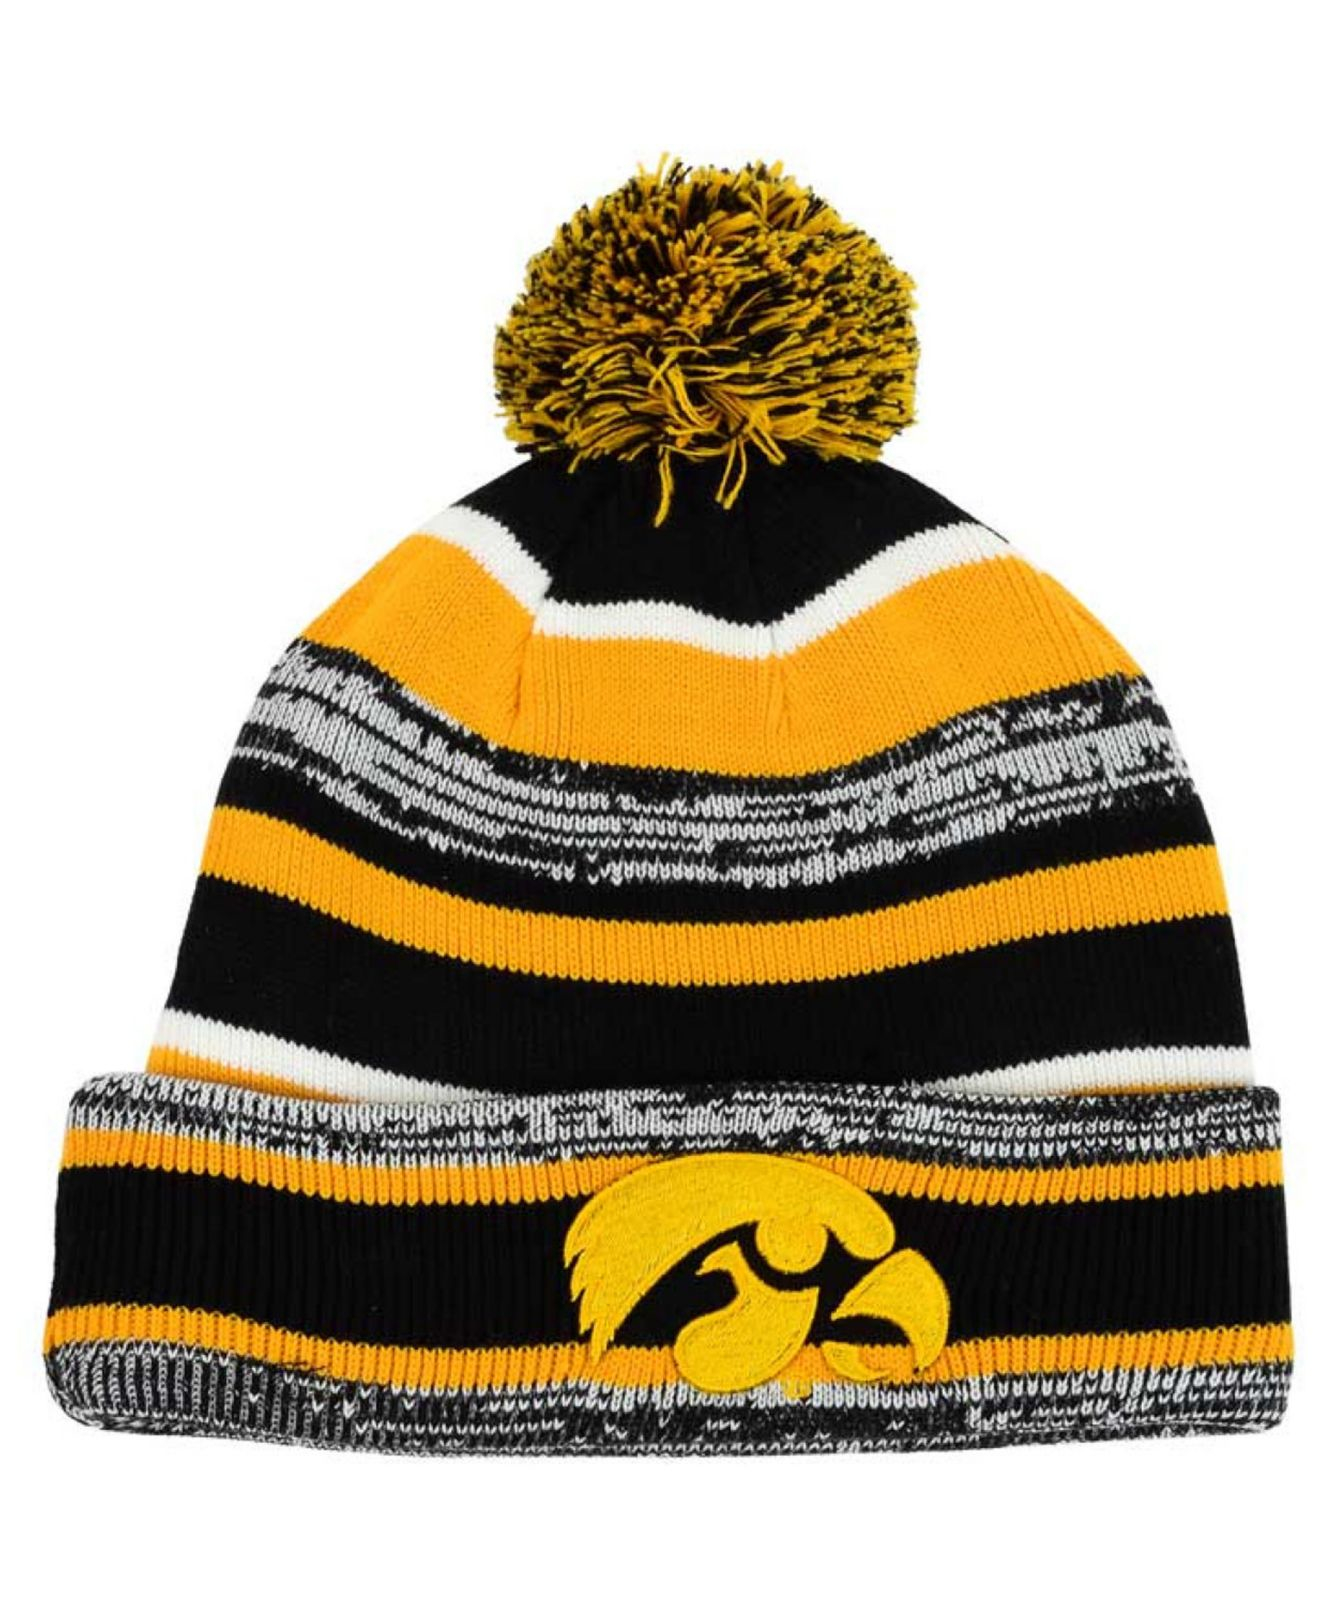 686d1e98 ... australia lyst ktz iowa hawkeyes sport knit hat in black for men c959a  b6201